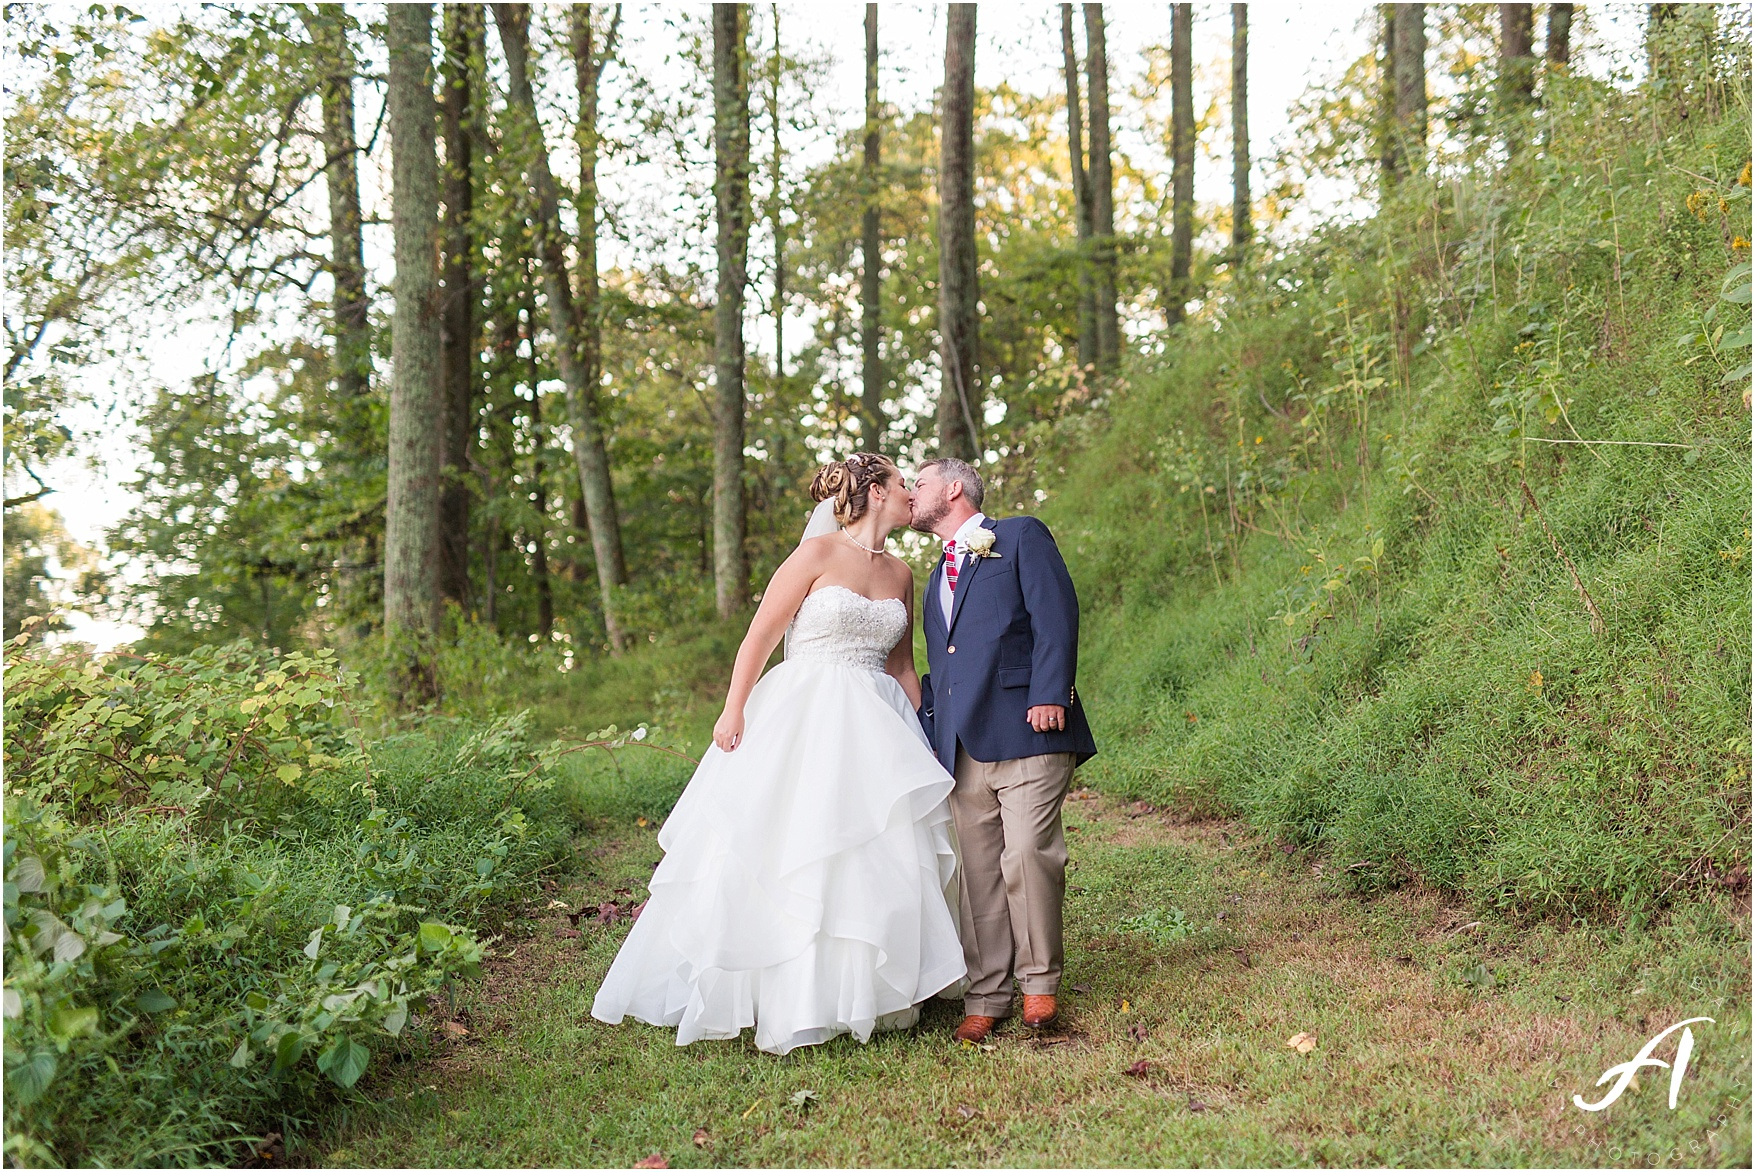 Fall Backyard Wedding in Lynchburg, Virginia || Central Virginia Wedding Photographer || Ashley Eiban Photography || www.ashleyeiban.com